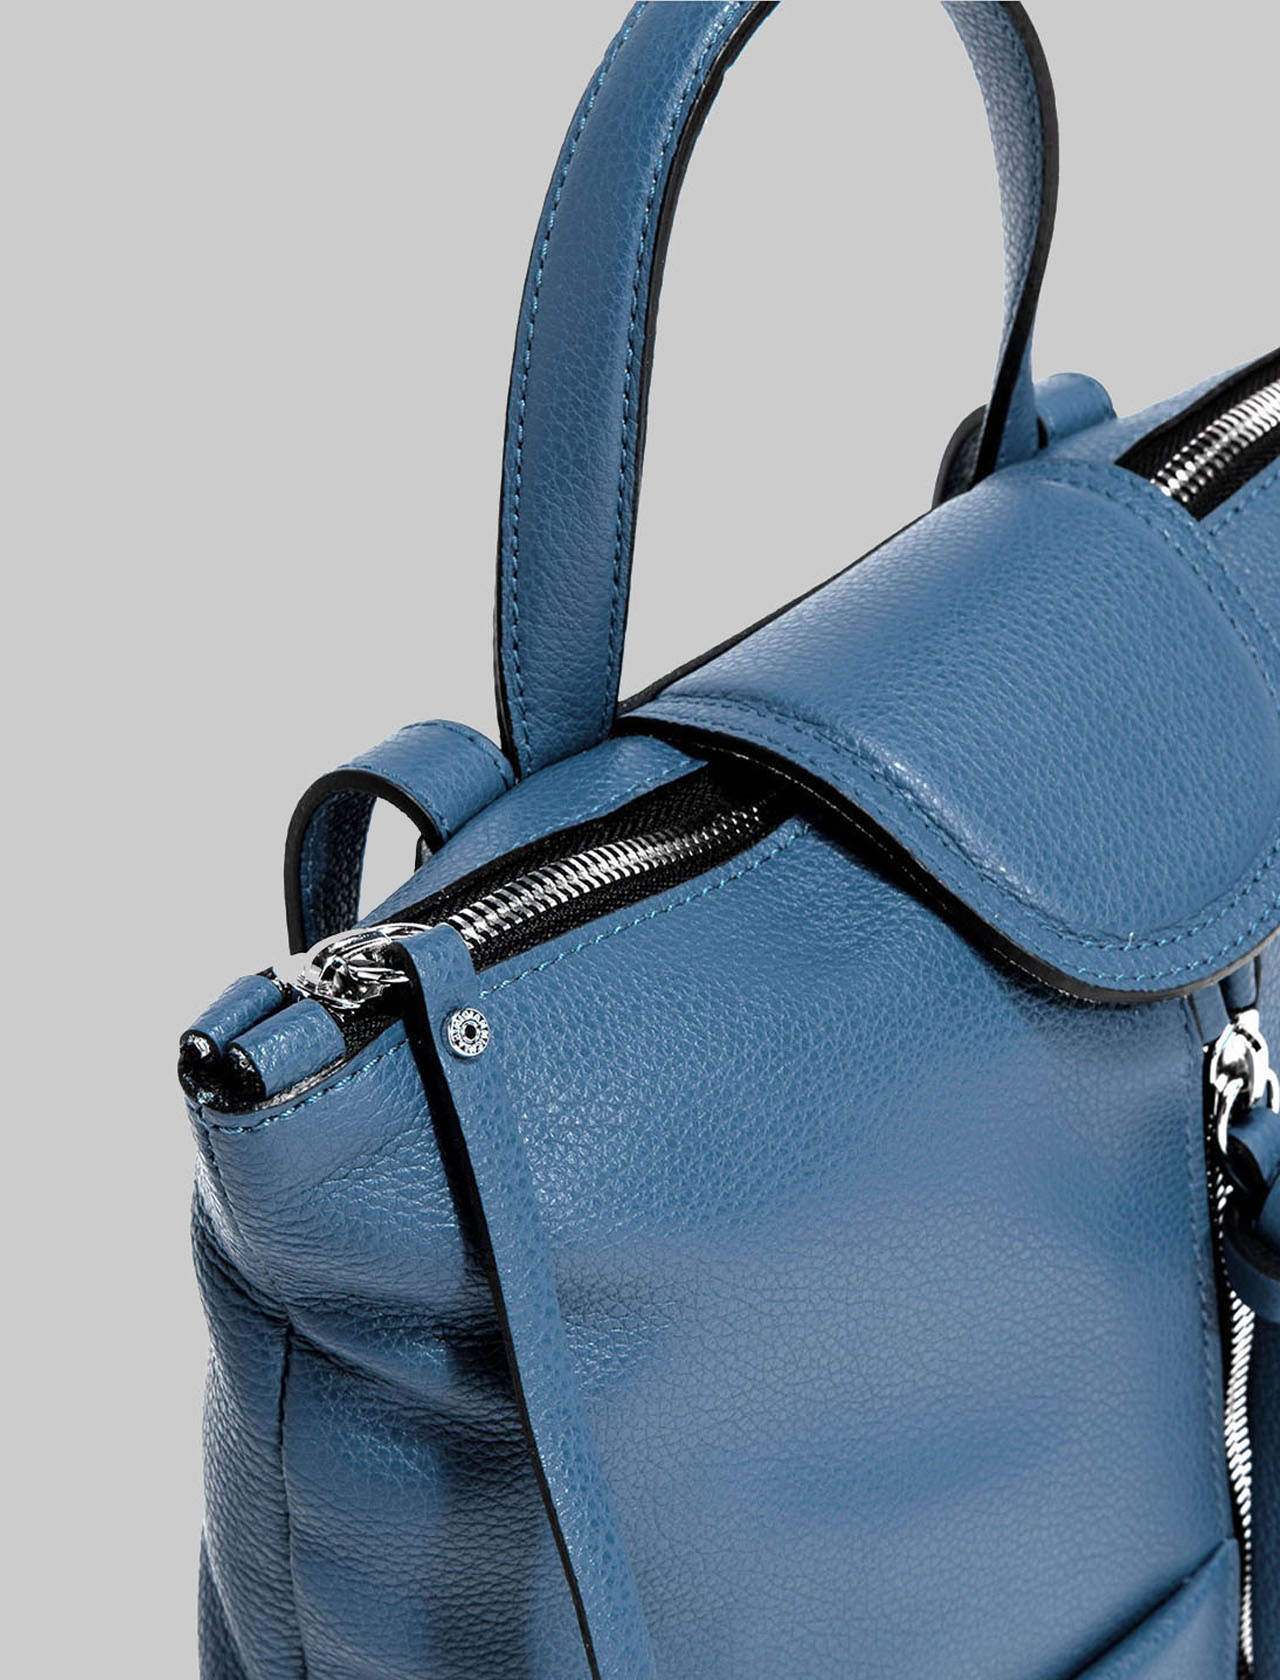 Giada Woman Backpack With Central Zipper In Blue Leather With Handle And Adjustable Straps Gianni Chiarini | Bags and backpacks | ZN704011710